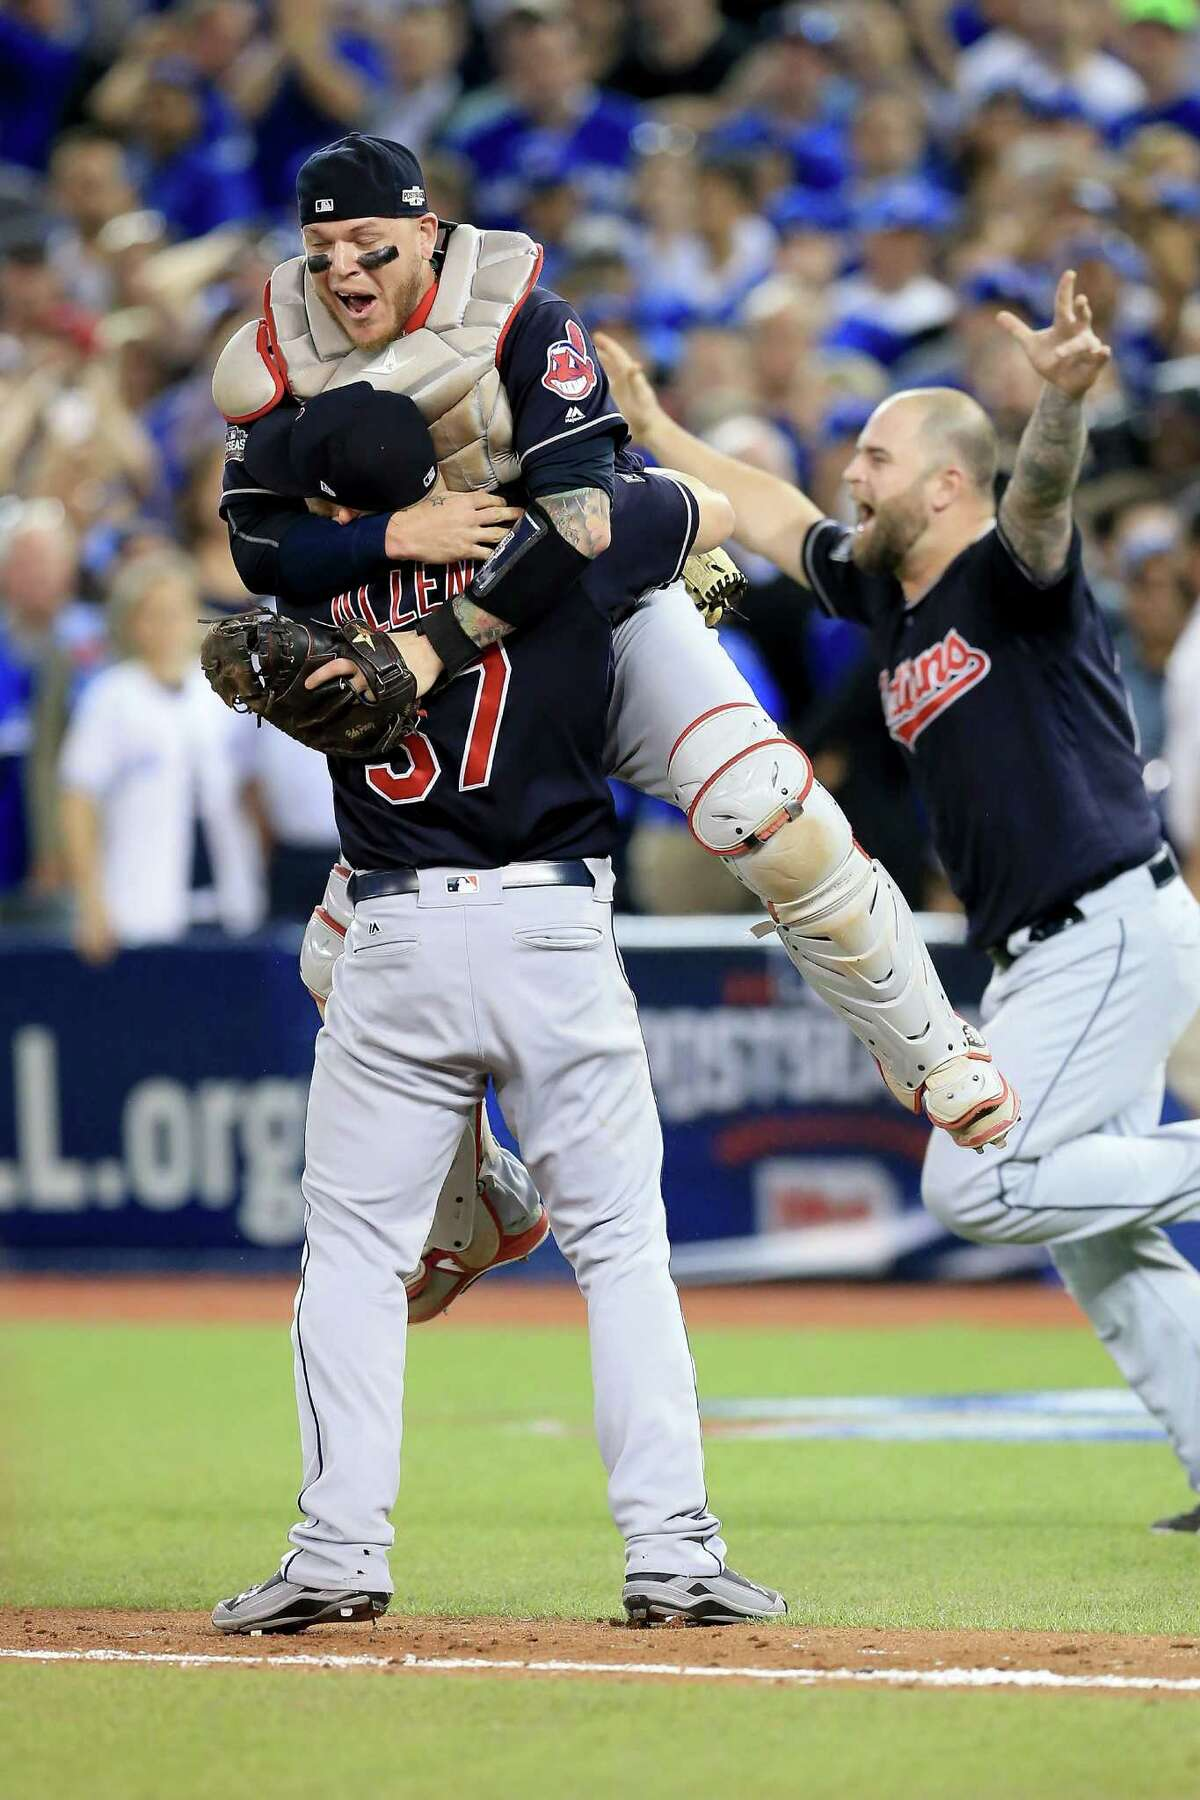 The Indians seem determined not to let LeBron James and the Cavs hog the glory as they cruised into the World Series by beating the Jays in five games.